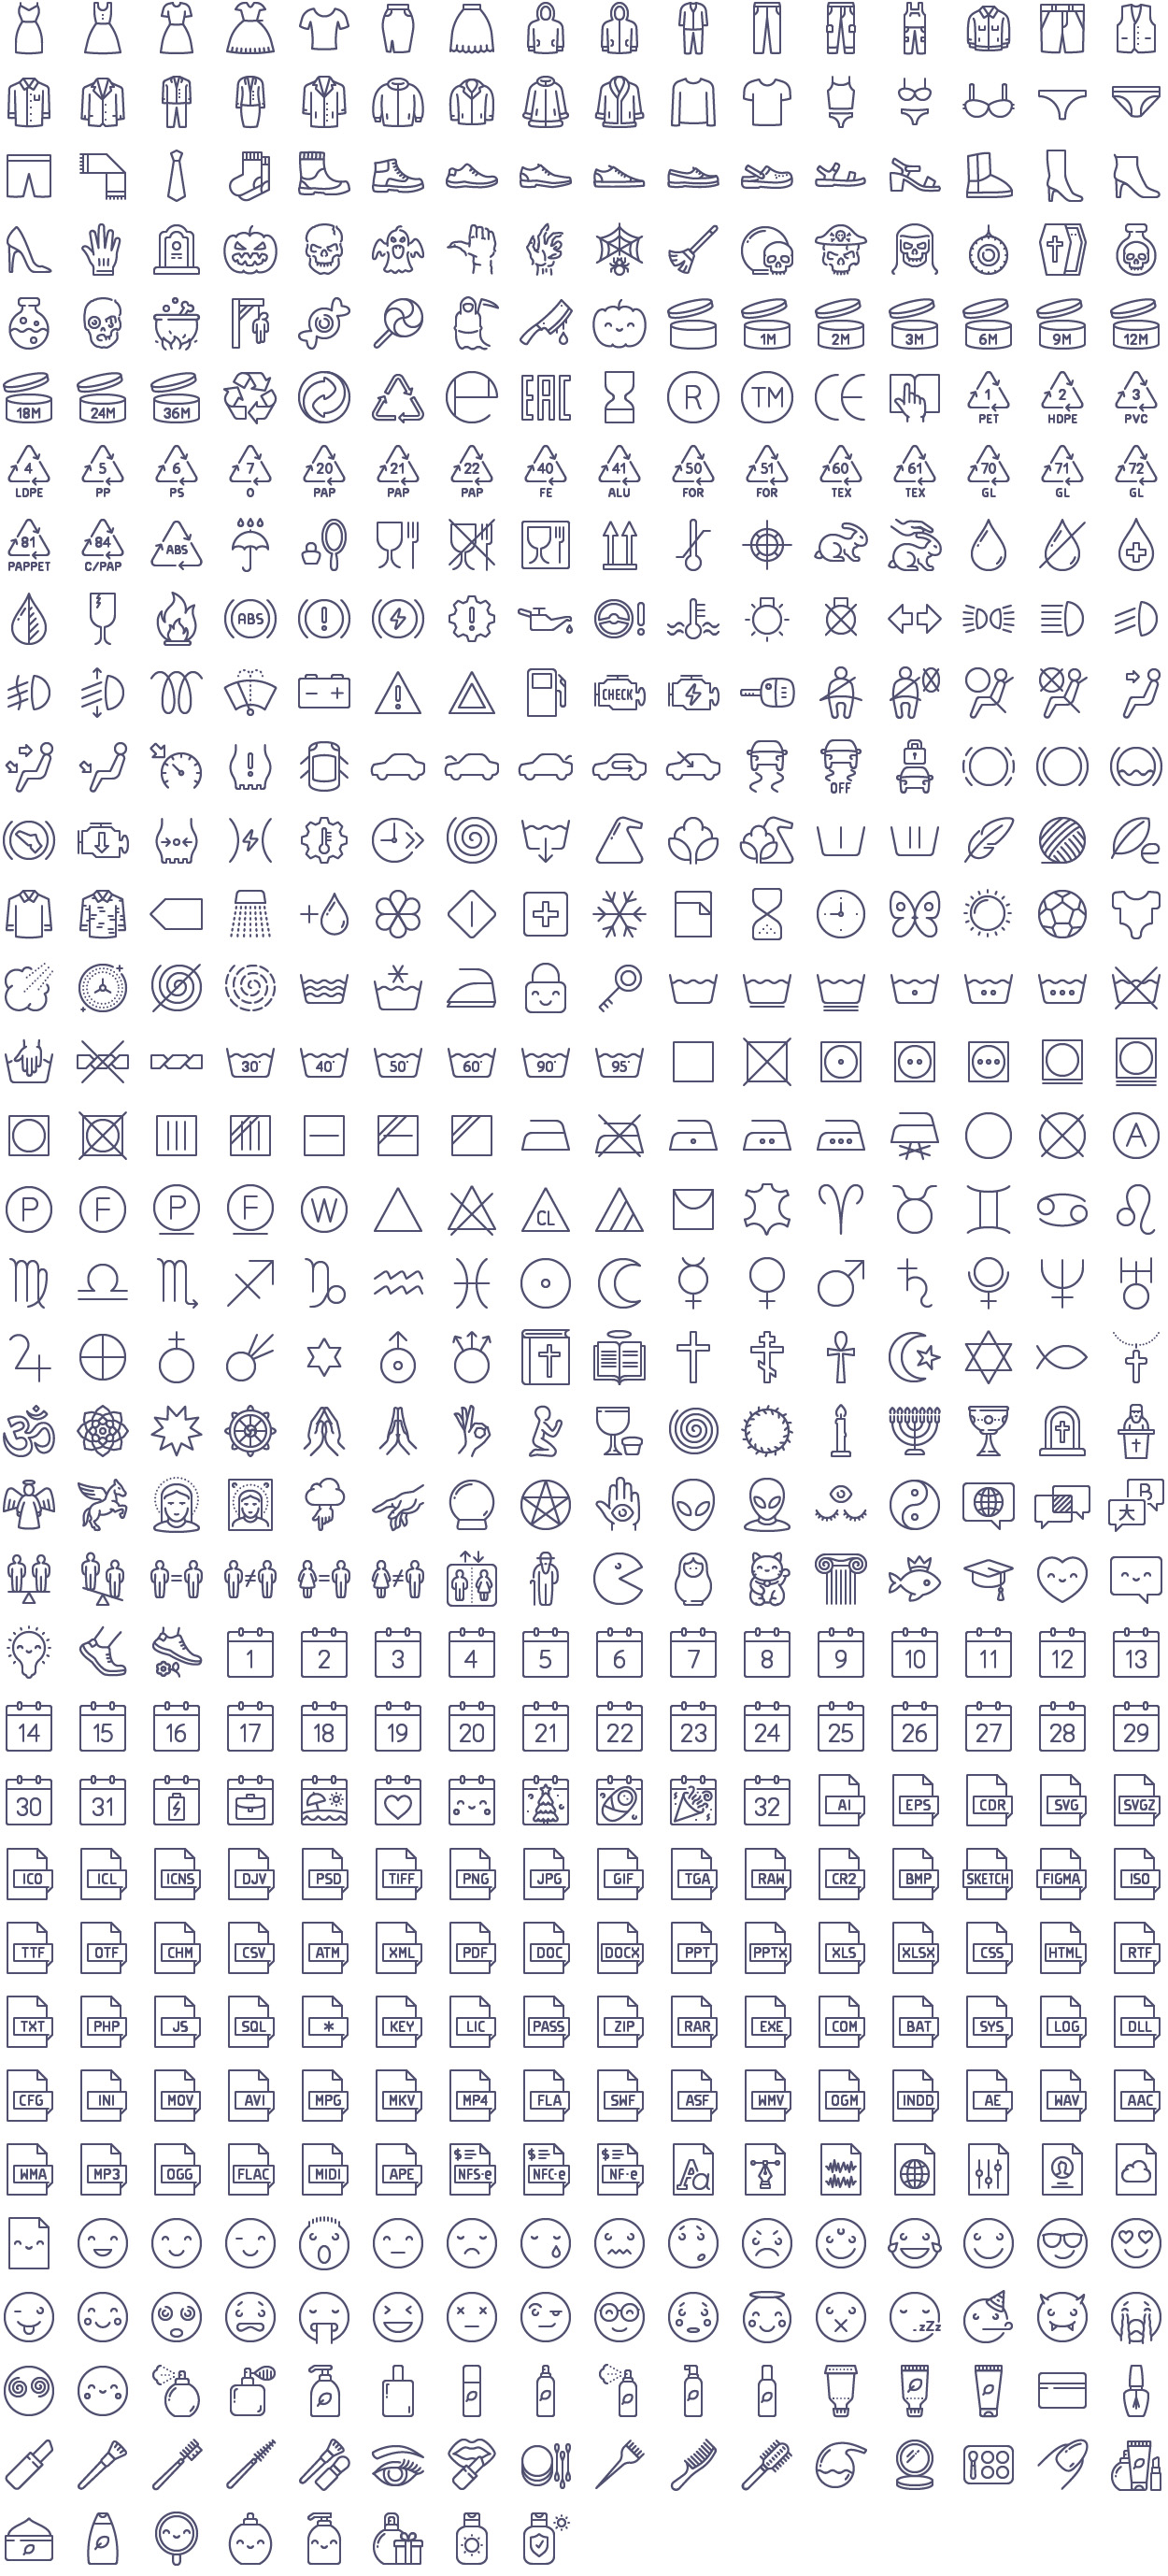 Unigrid 2 icons full